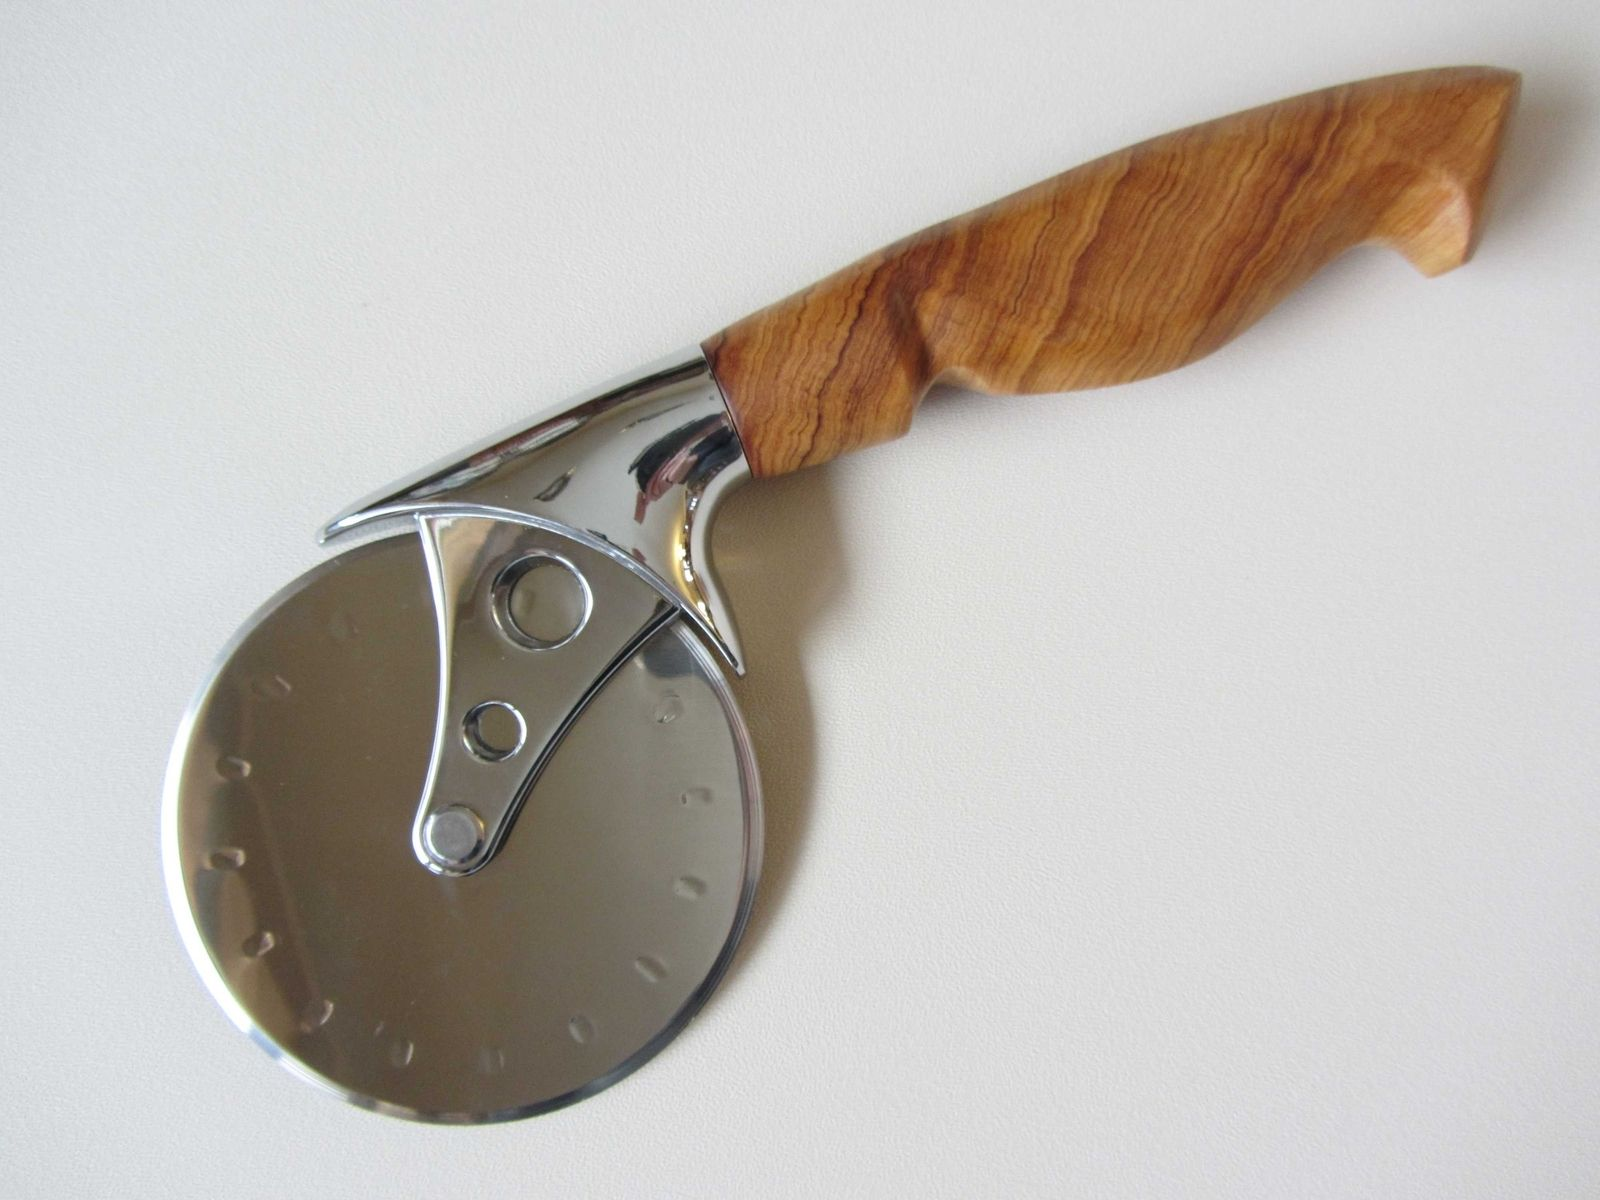 Hand Made Pizza Cutter - Stainless Steel - European Knife